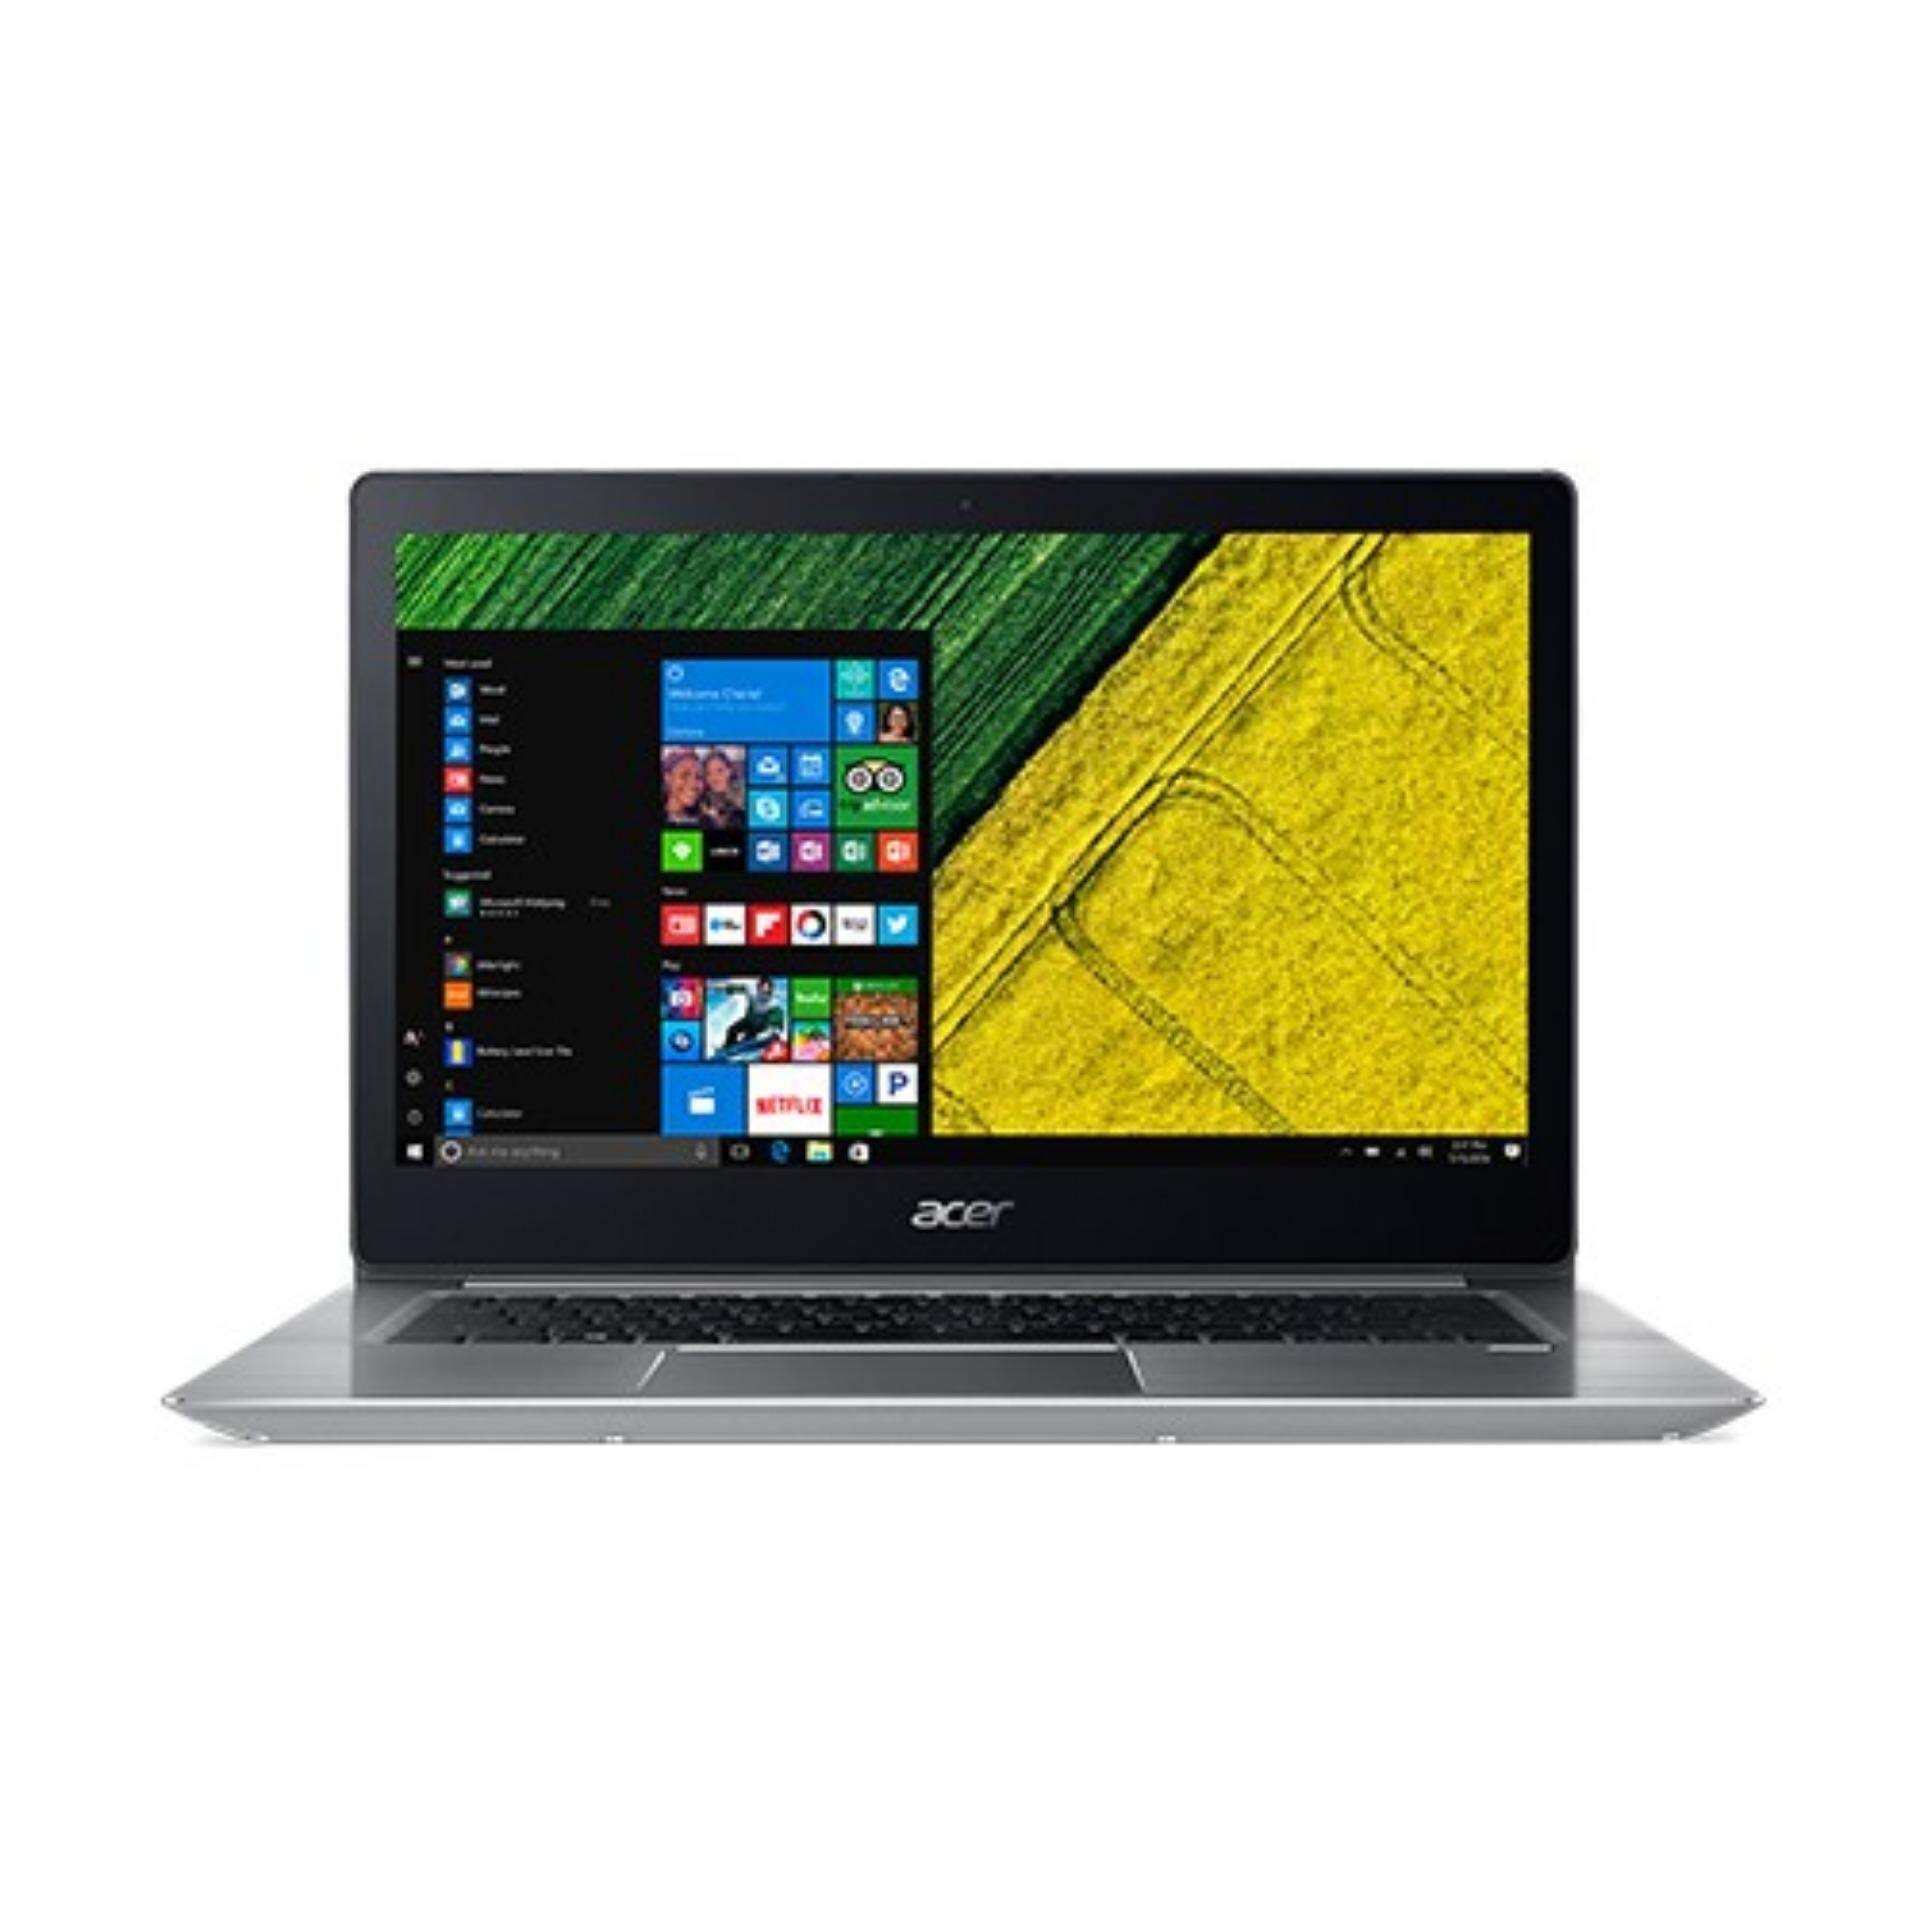 Notebook Acer  Swift3  SF314-52-538U i5-8250U 8G256G UMA W10 S (NX.GQGST.005)ประกันศูนย์Acer